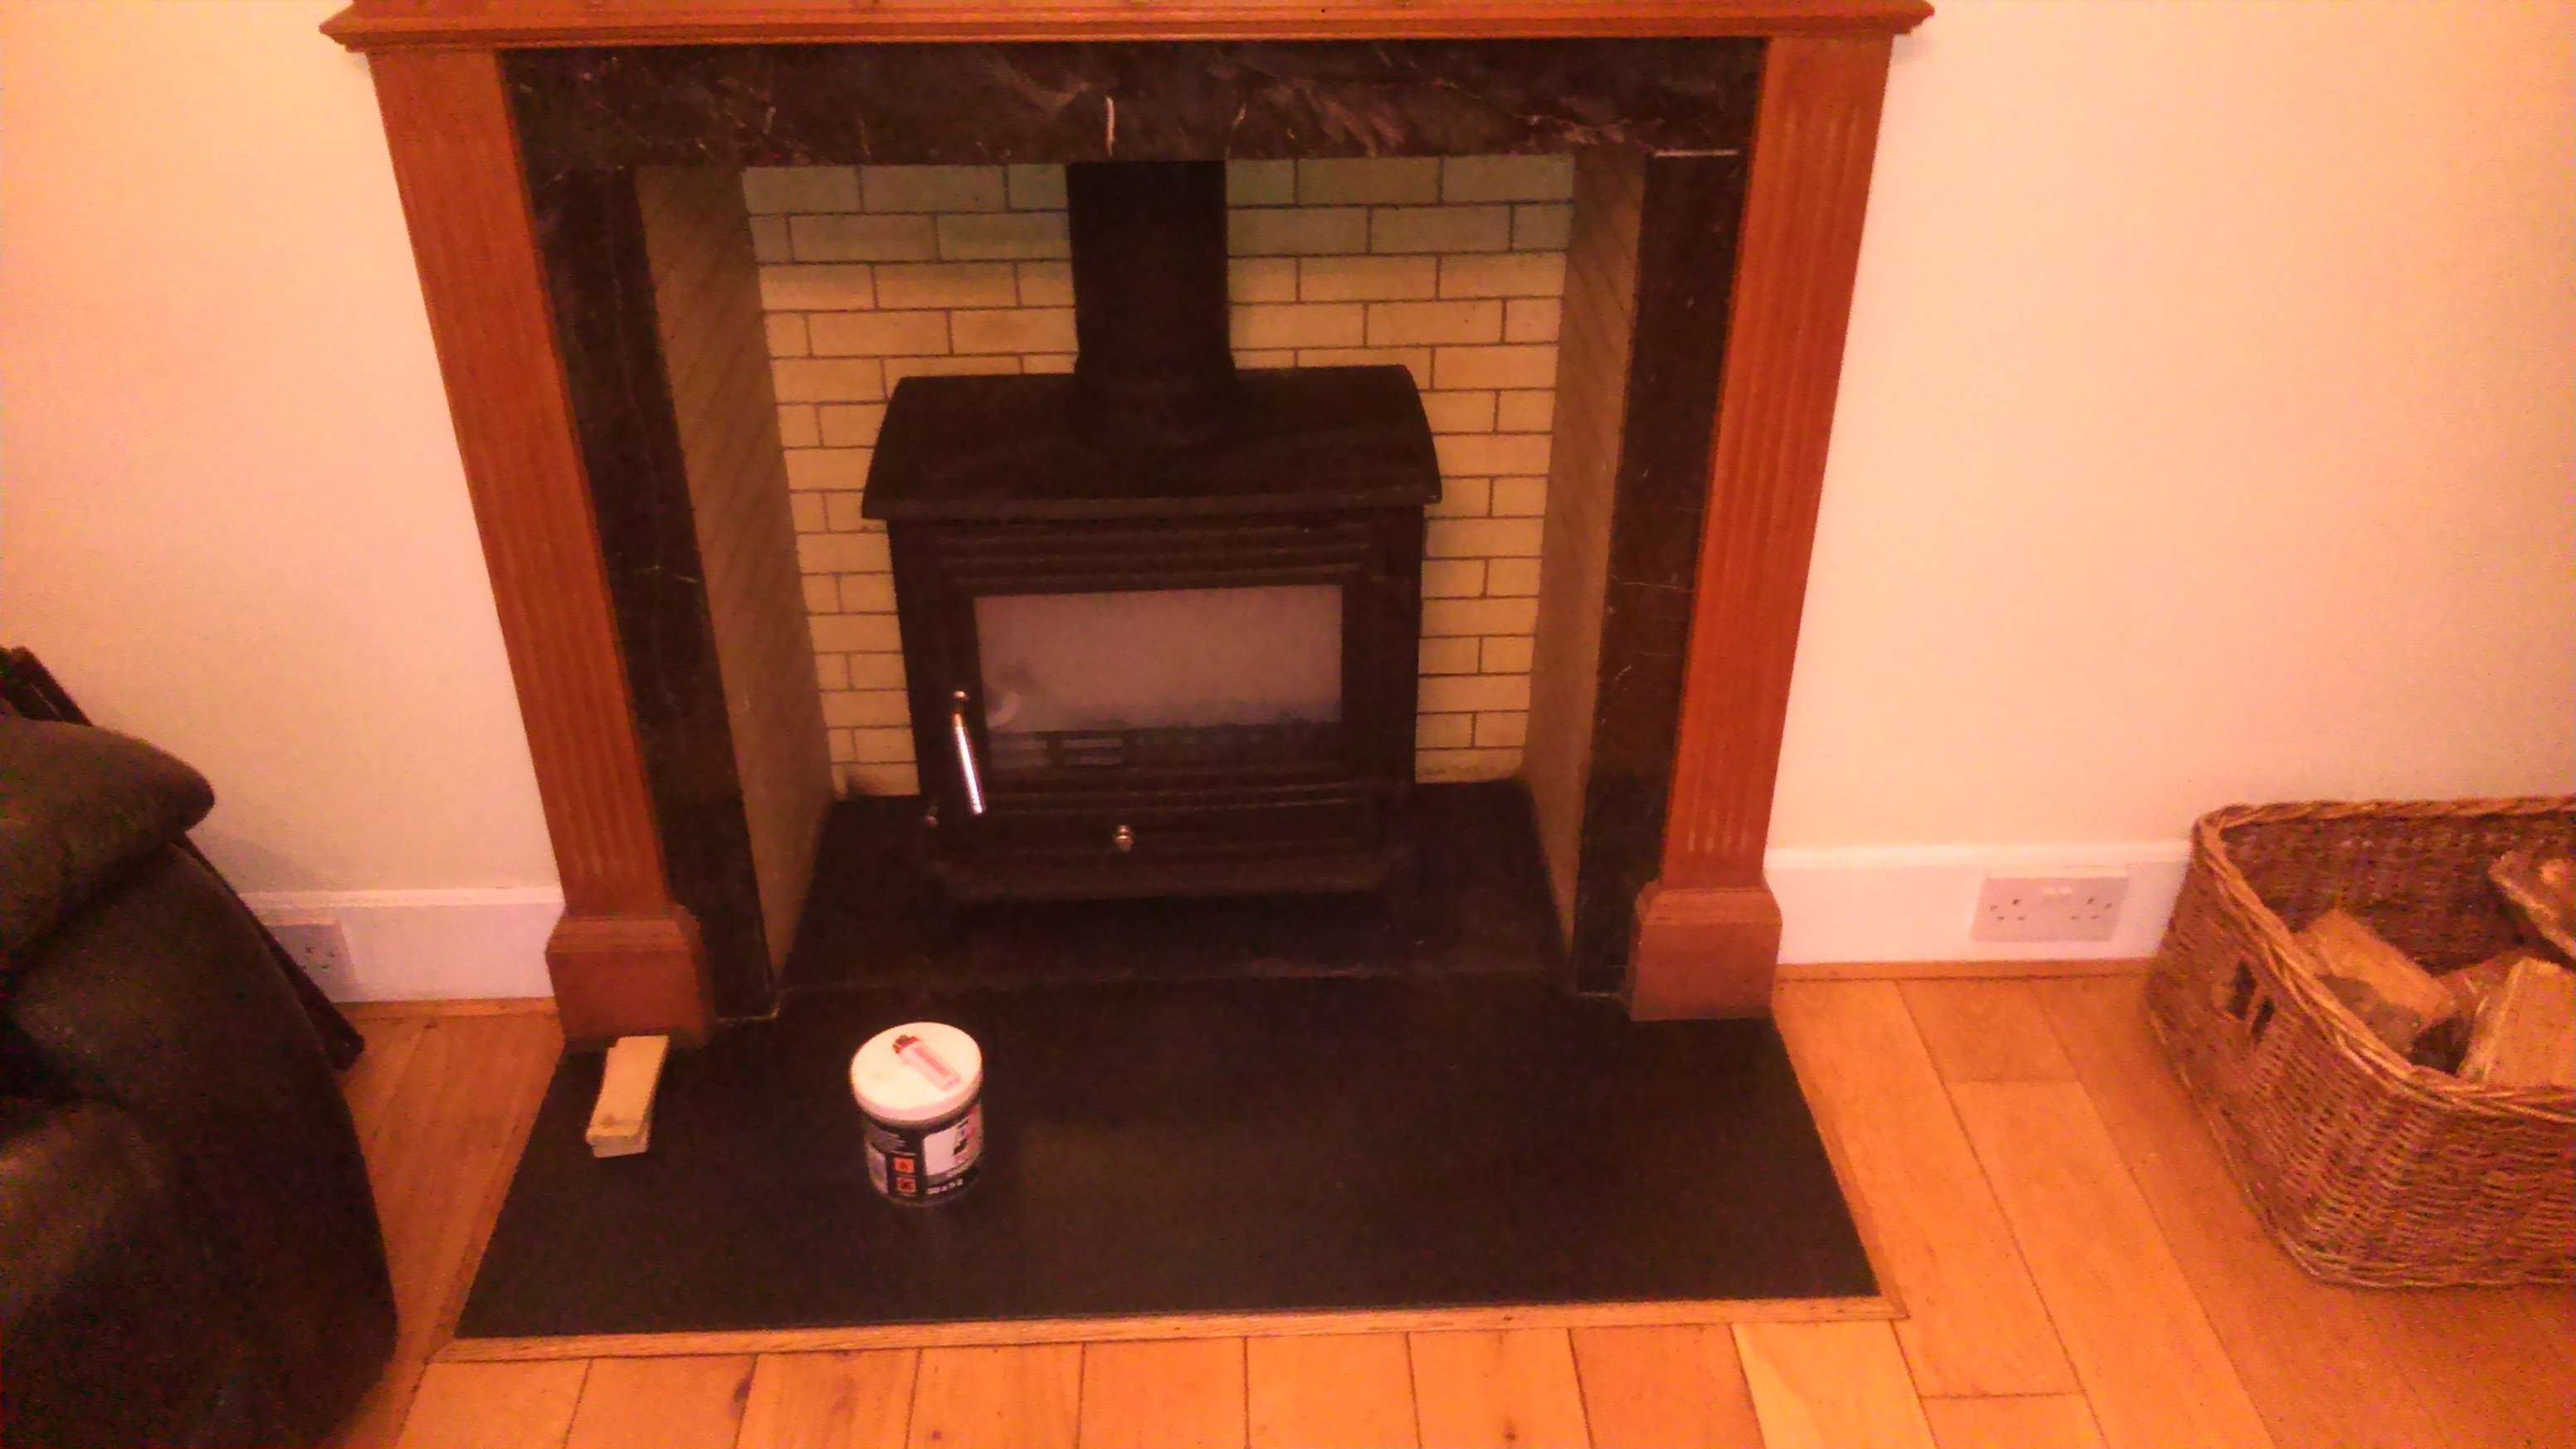 Fireplace installations